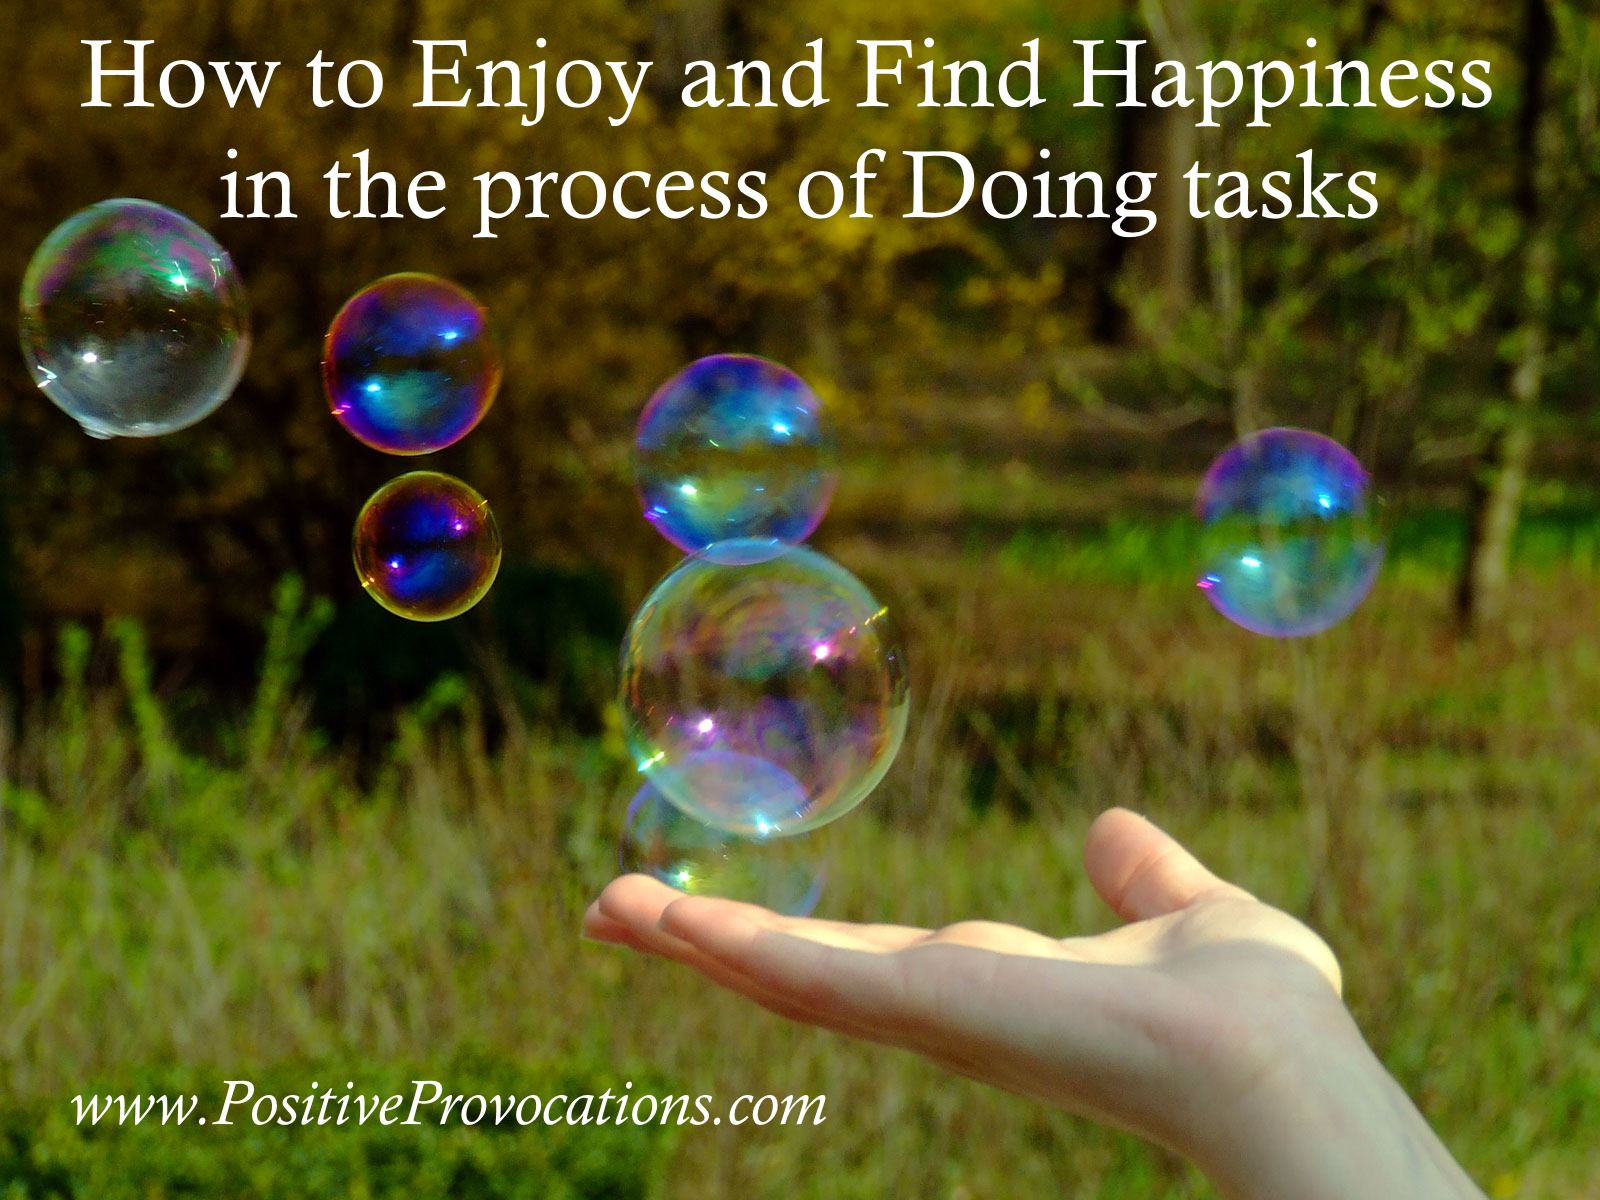 How To Enjoy And Find Happiness In The Process Of Doing Tasks